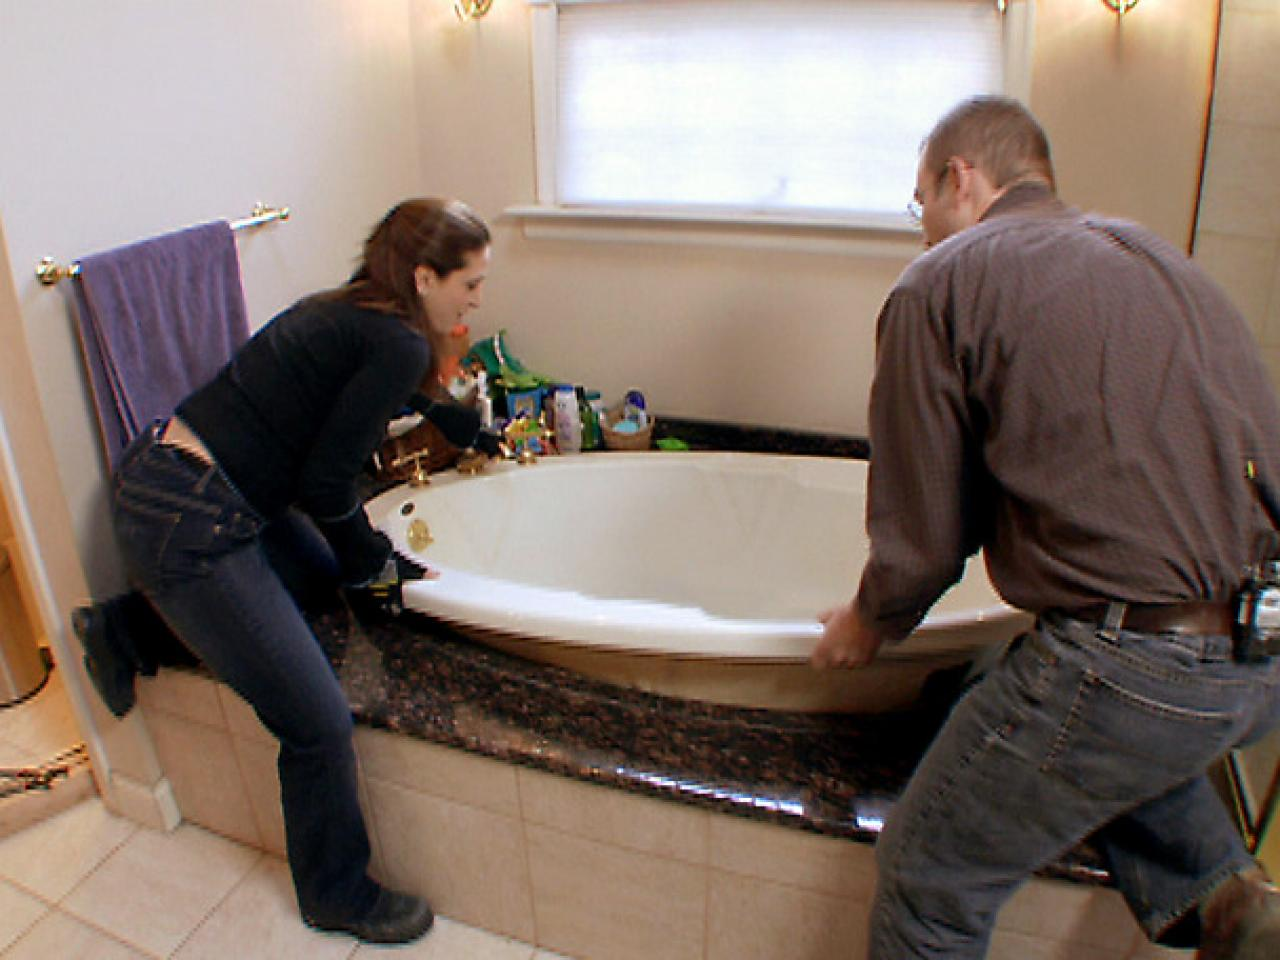 Bathroom Renovation Cost Whirlpool how to install a whirlpool bathtub | how-tos | diy